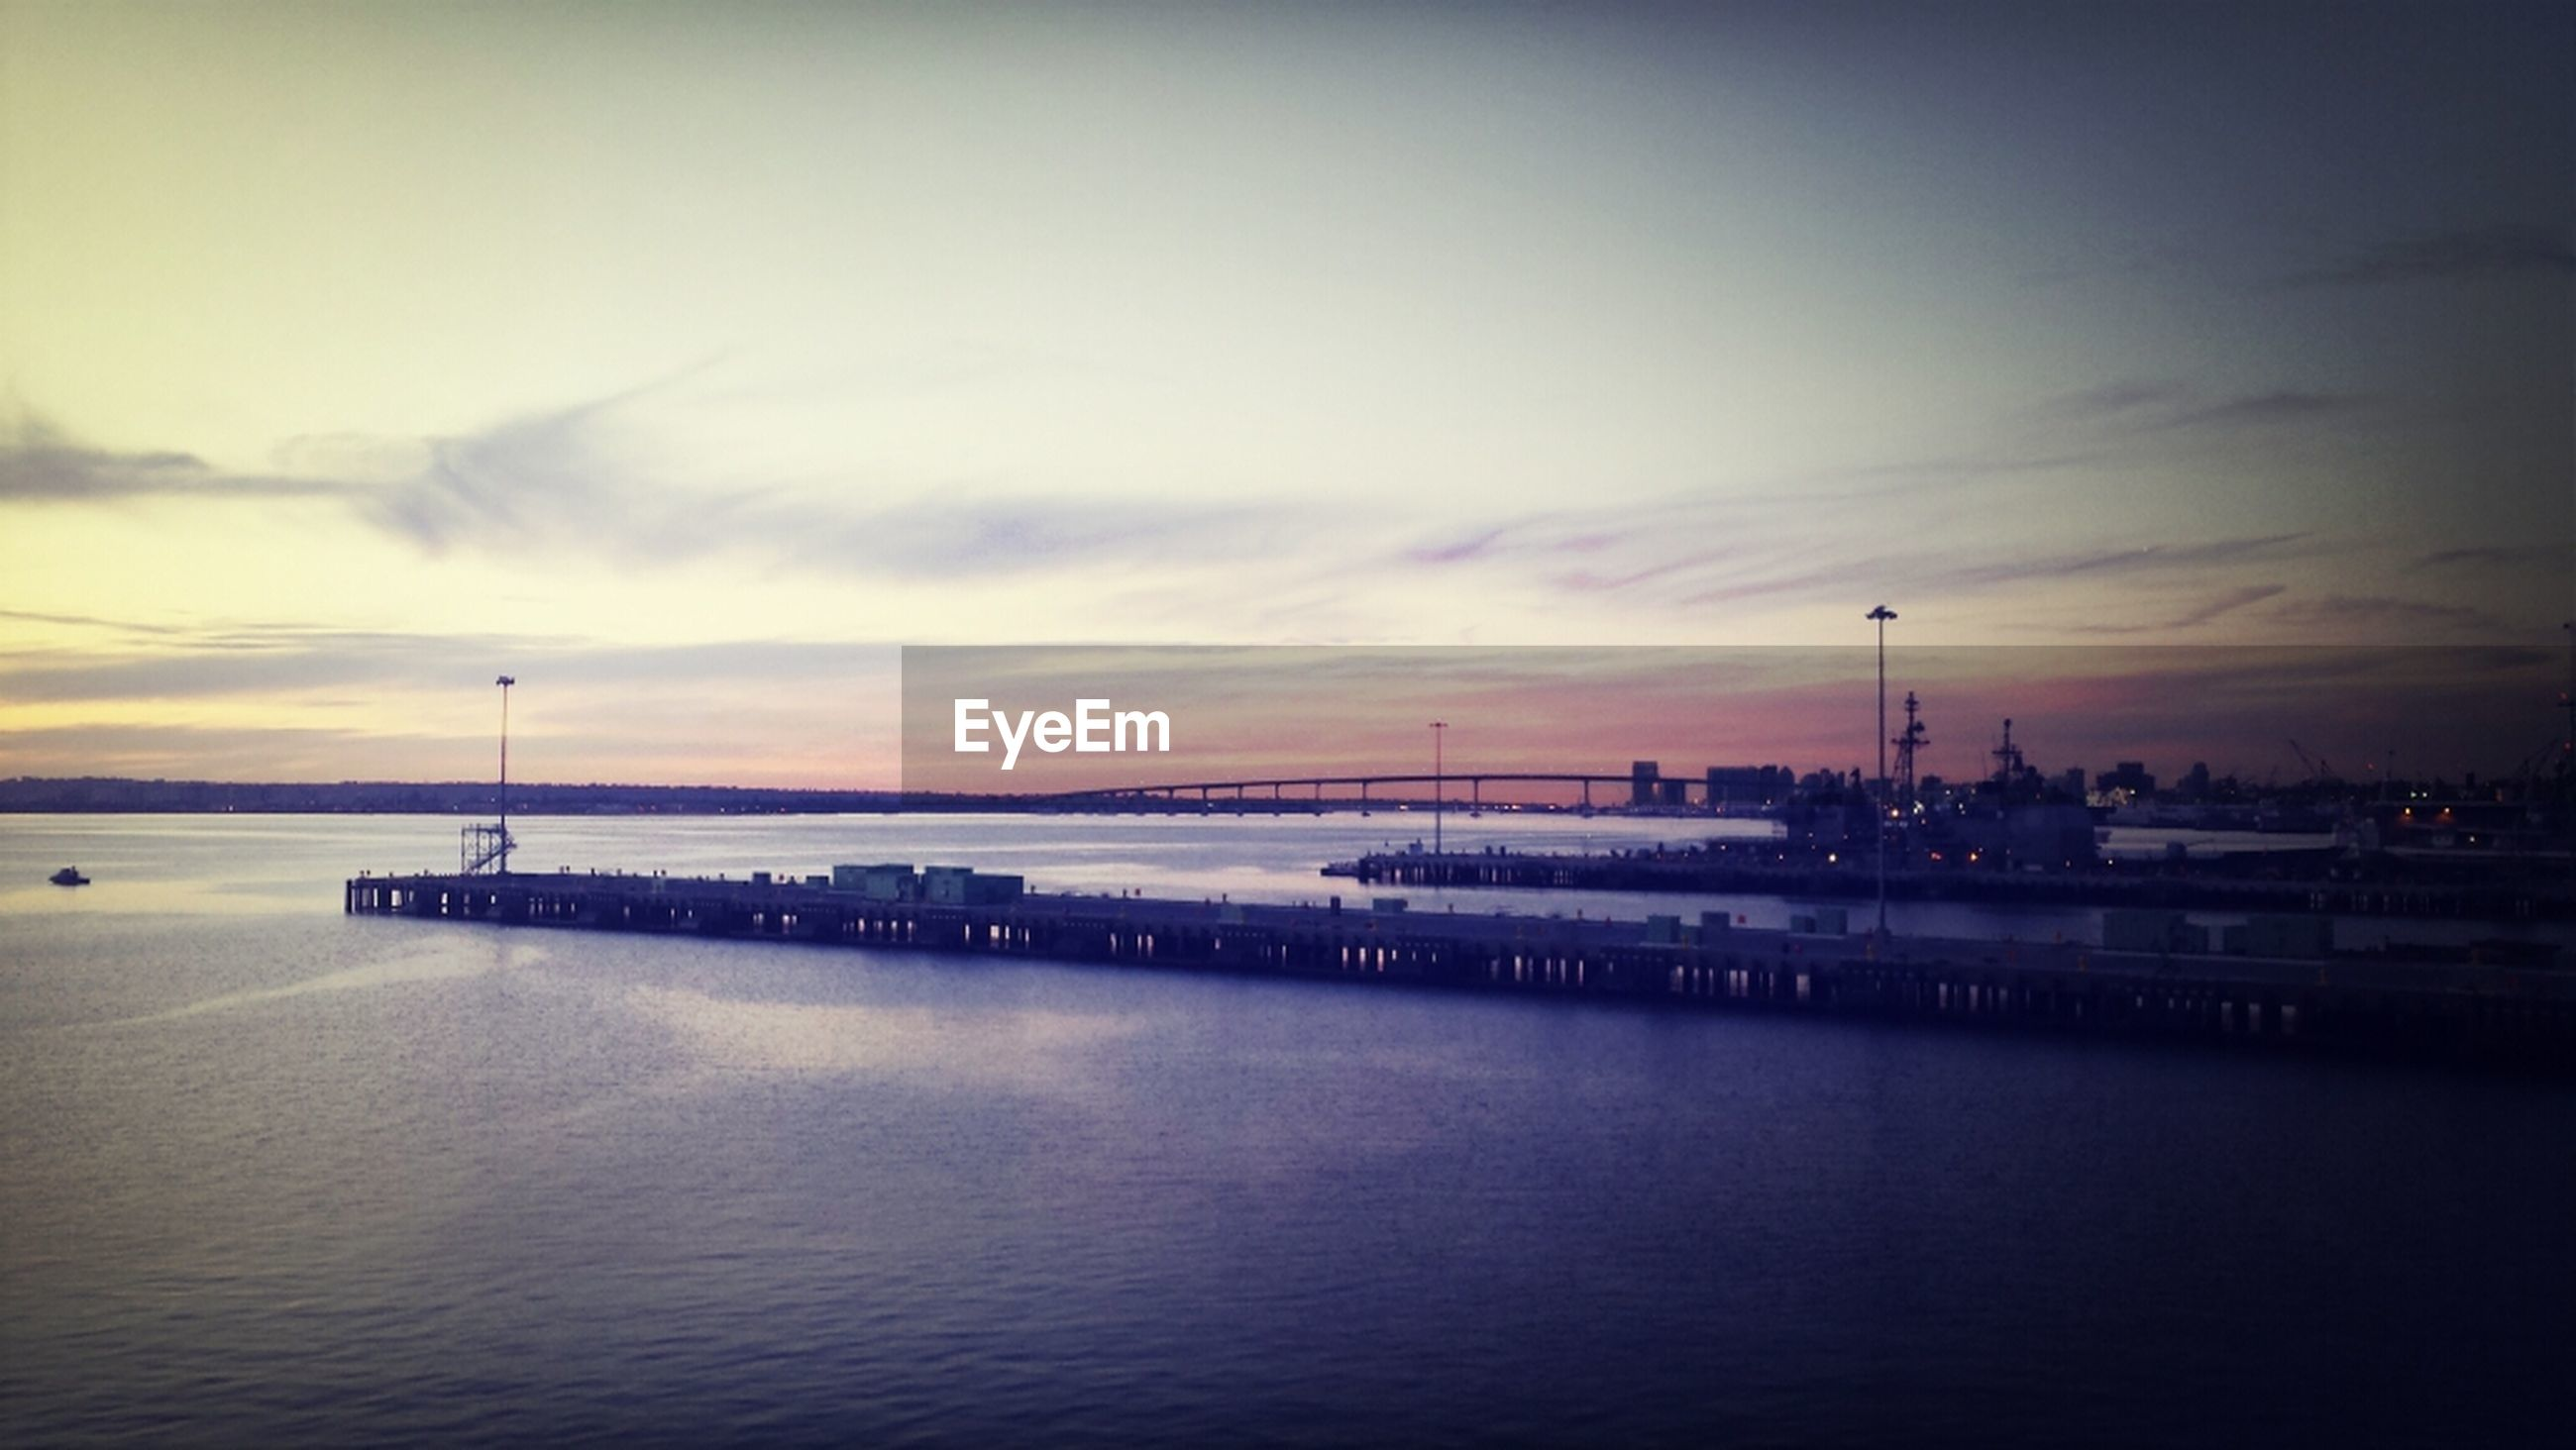 water, sea, sunset, sky, silhouette, waterfront, built structure, architecture, scenics, dusk, tranquility, tranquil scene, beauty in nature, building exterior, nature, cloud - sky, pier, illuminated, idyllic, reflection